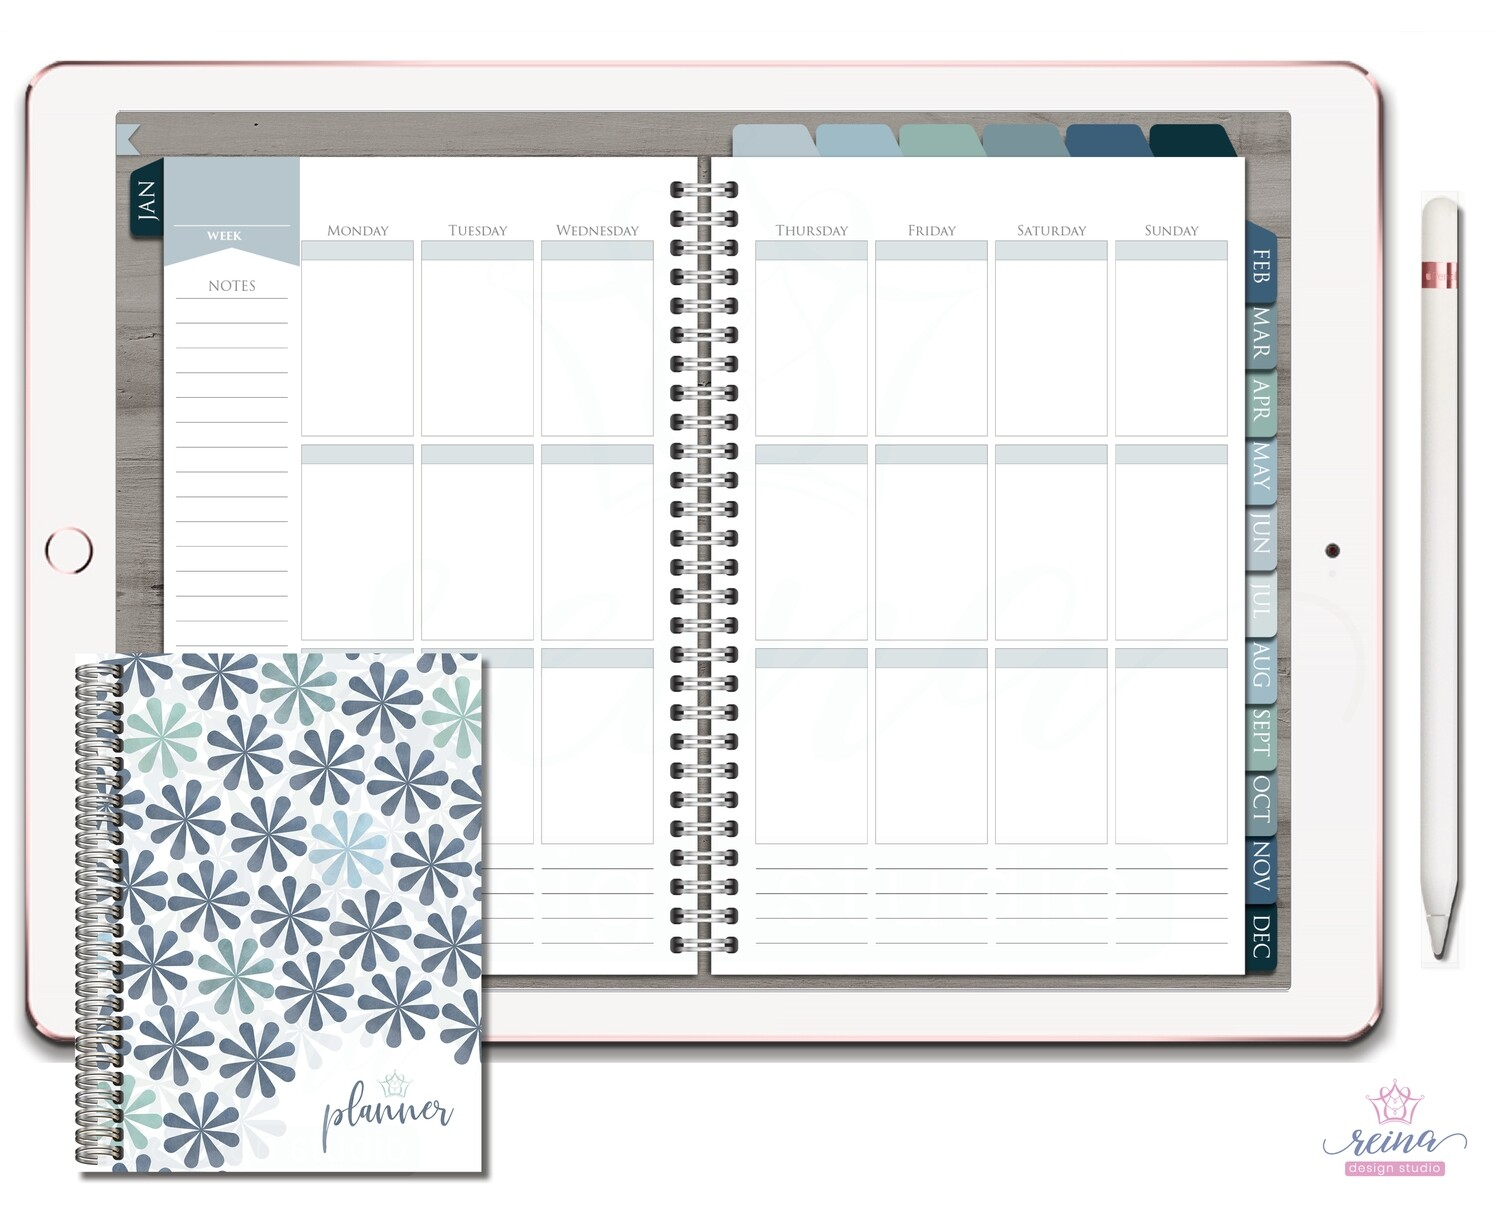 Undated Deluxe Digital Planner | Vertical, Silver, Blue Slate